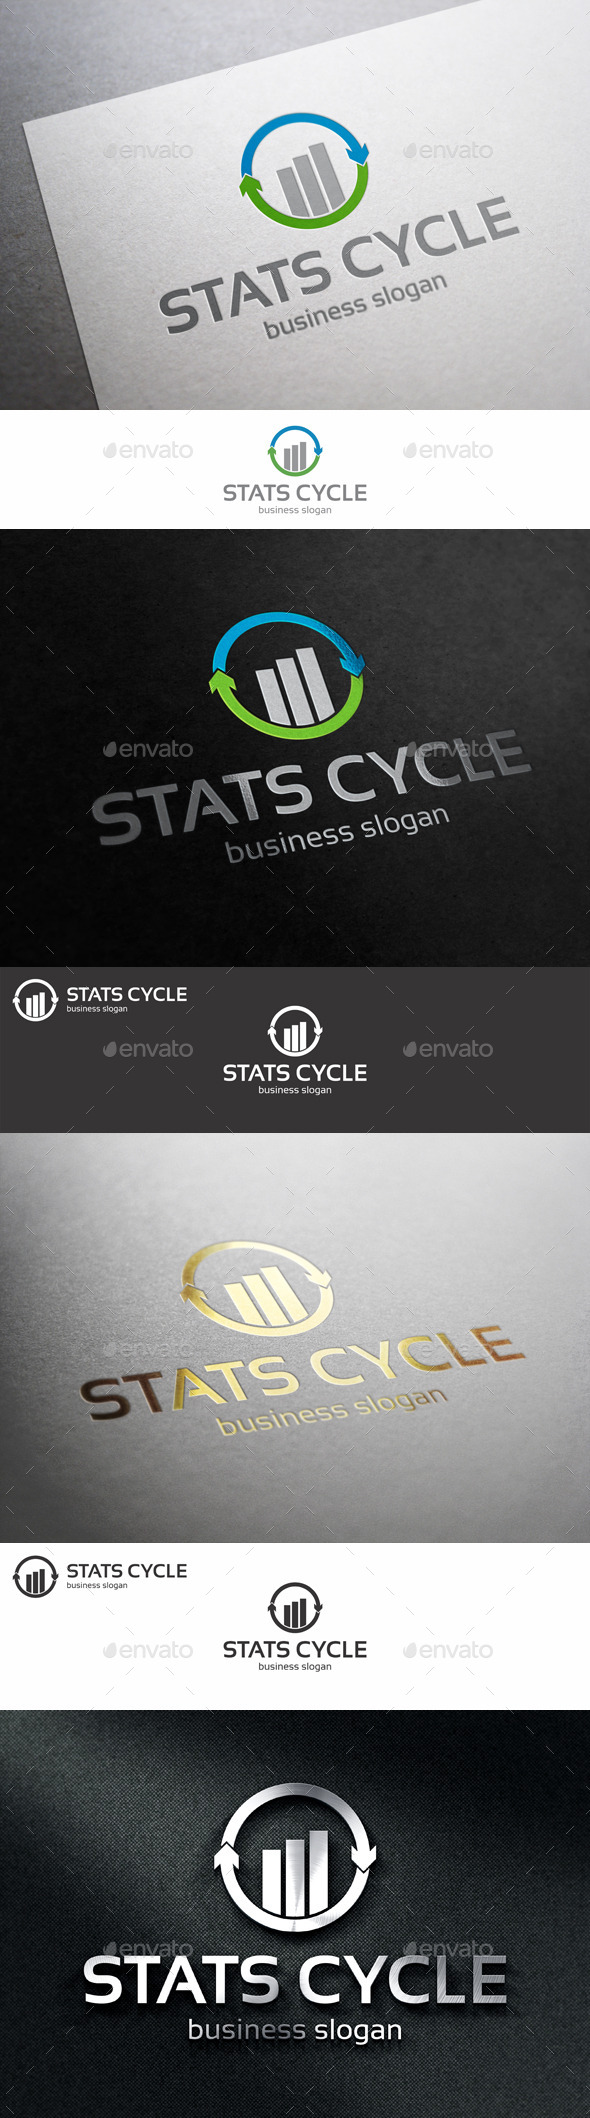 GraphicRiver Stats Cycle Marketing Logo 10994928